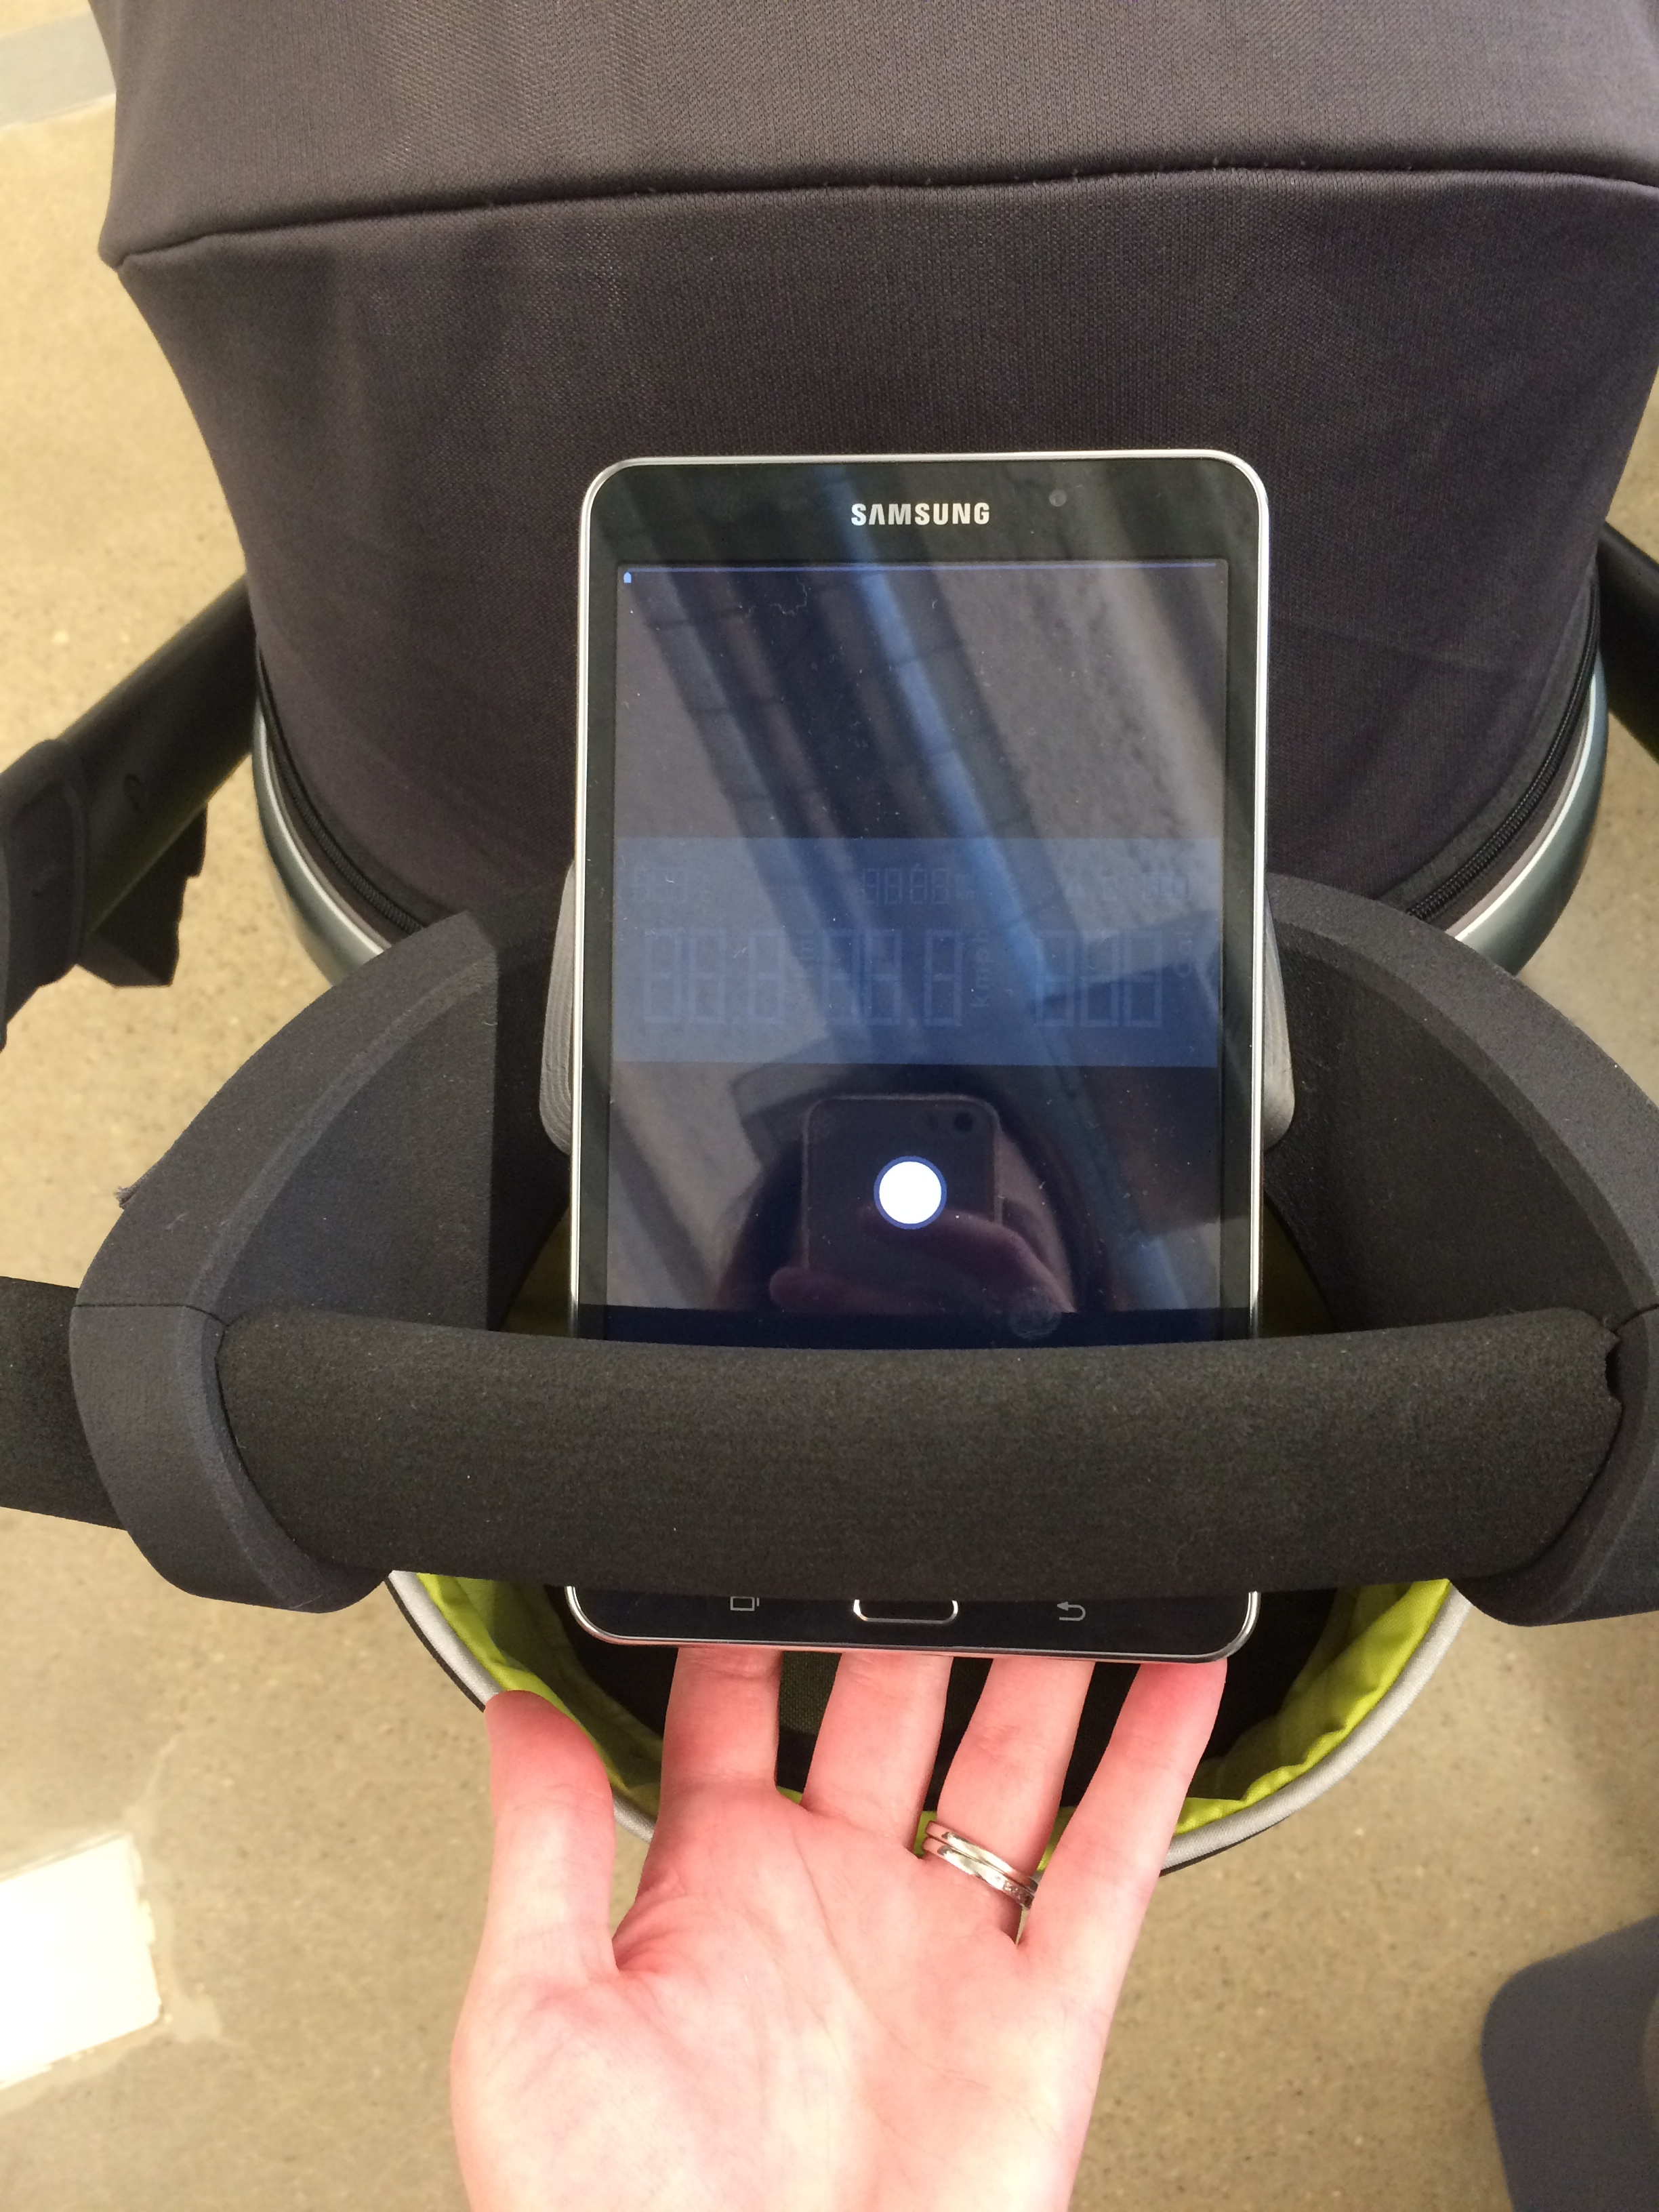 Interactive mockup of the stroller LCD screen, running on an Android tablet